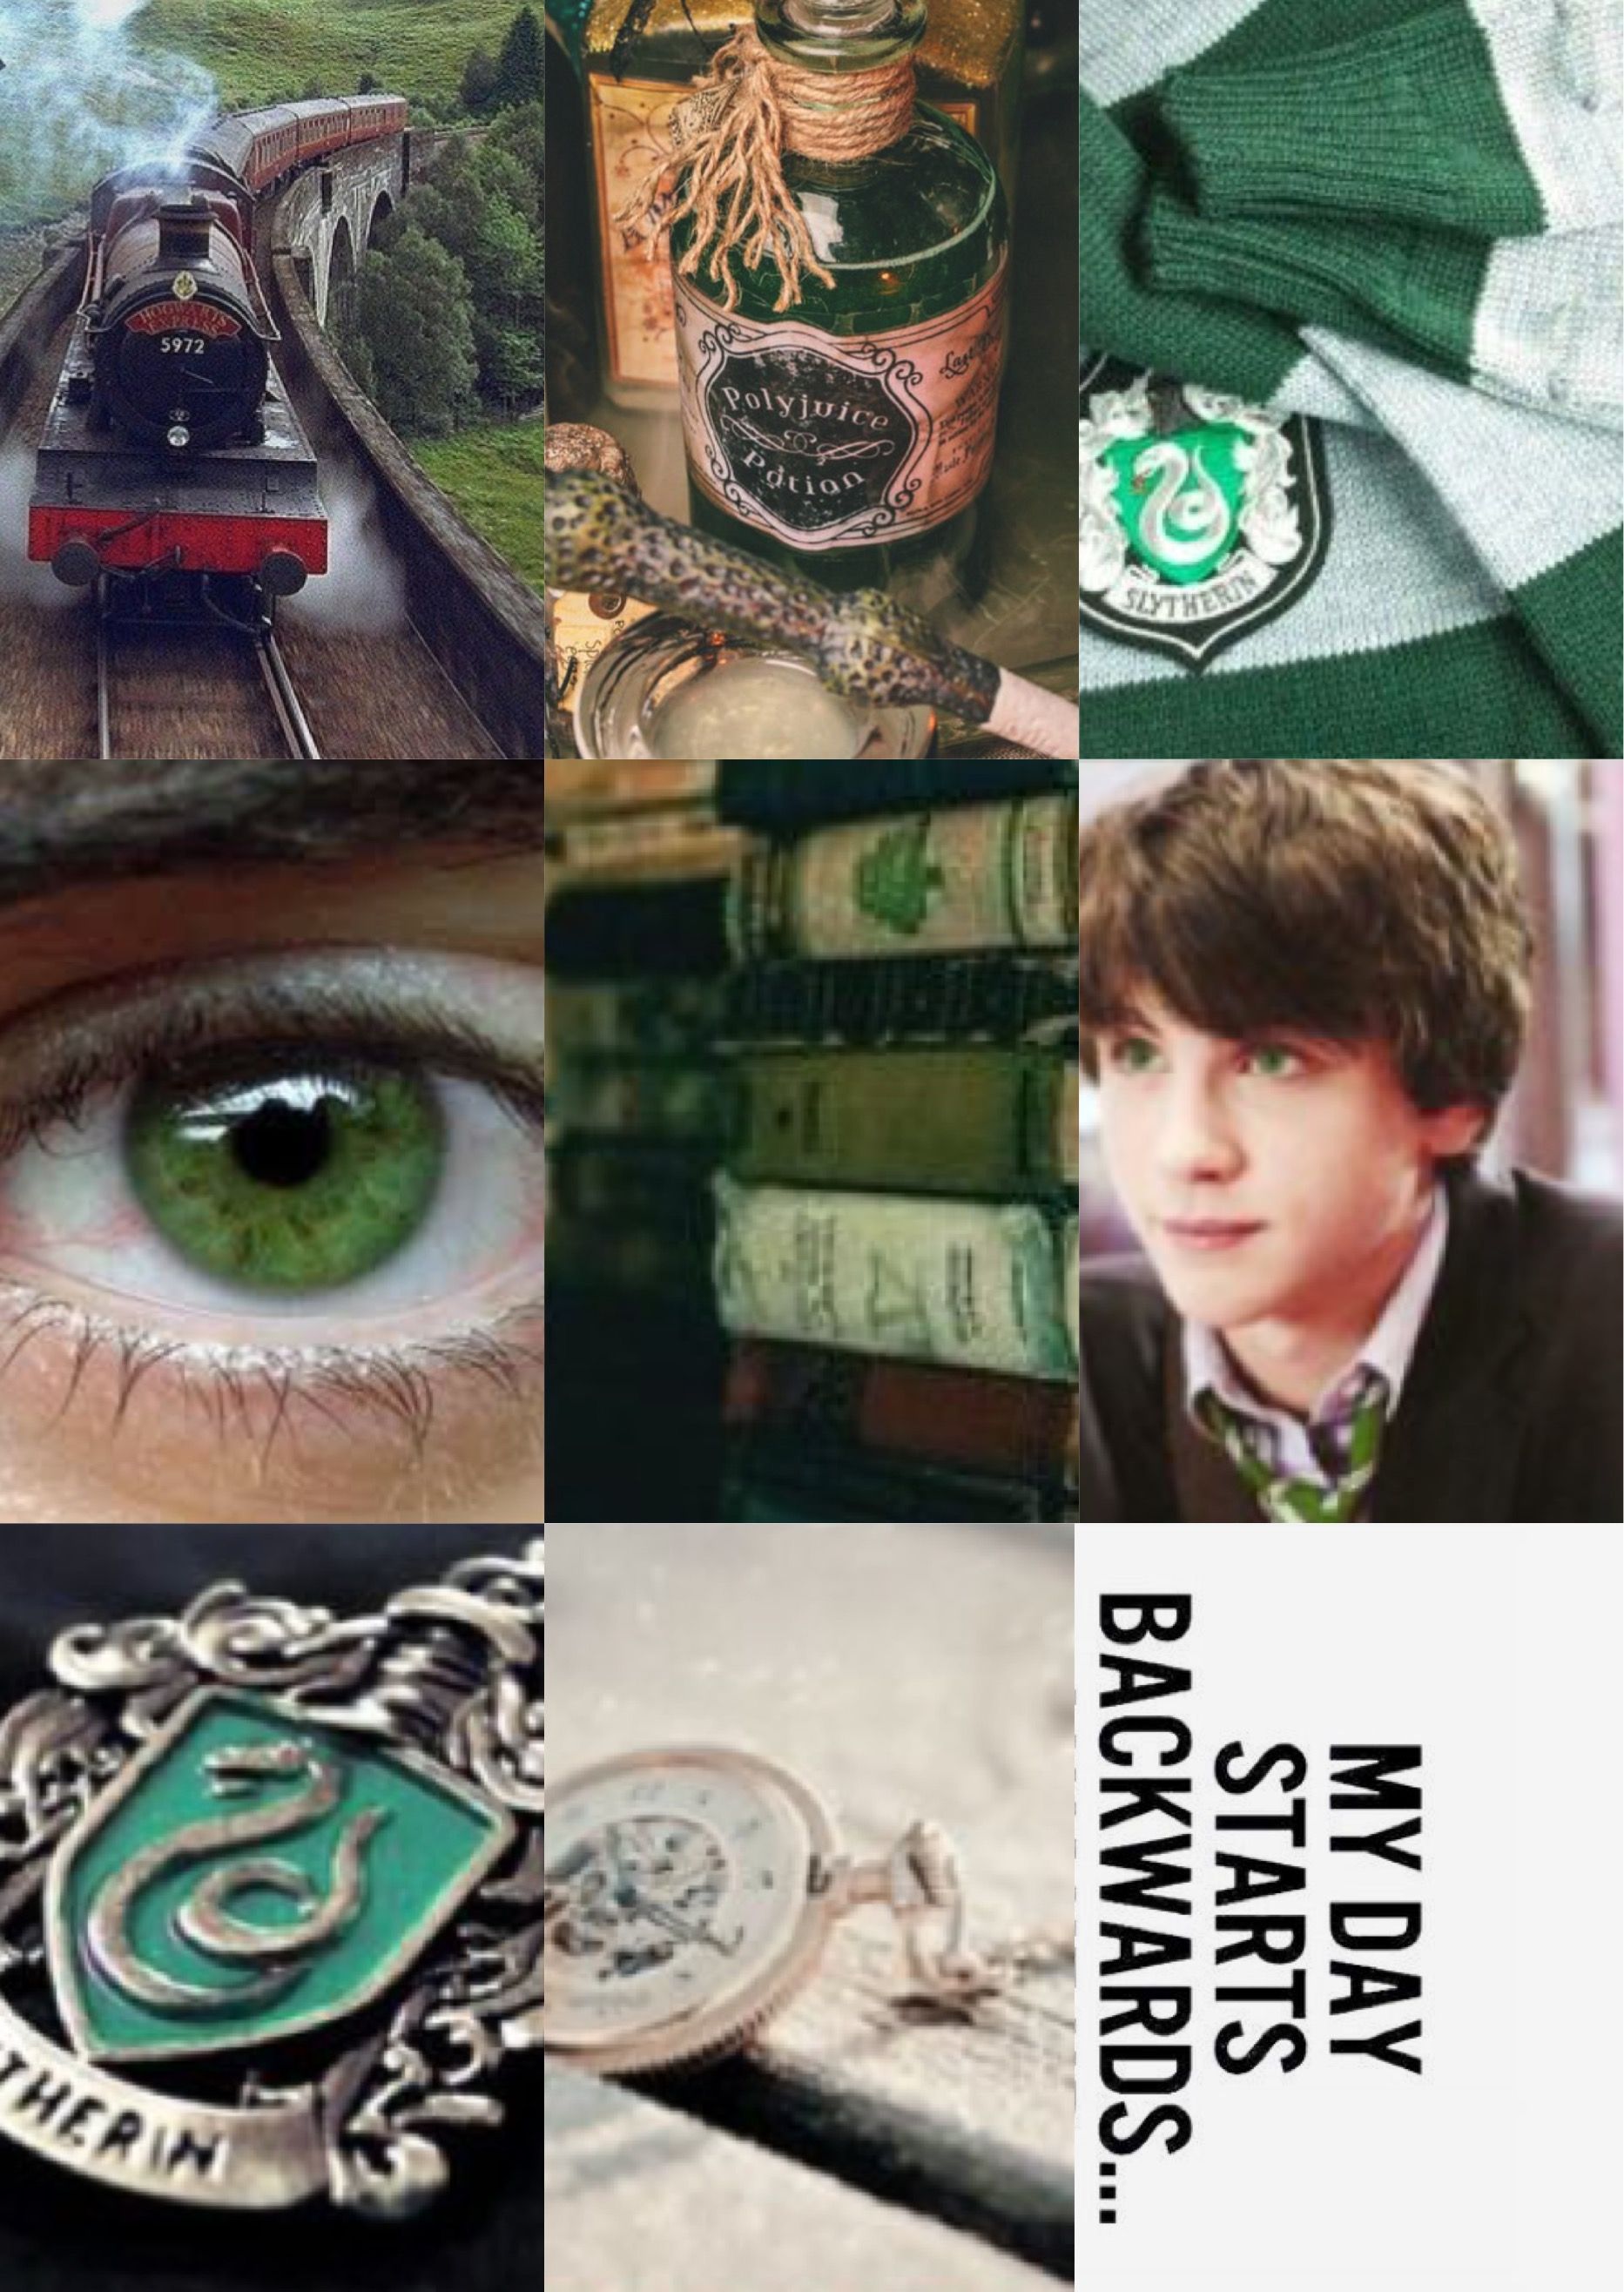 Albus Severus Potter Next Generation Harry Potter Aesthetic Inspiration Slytherin Albus Severus Potter Harry Potter Fantastic Beasts Harry Potter Characters